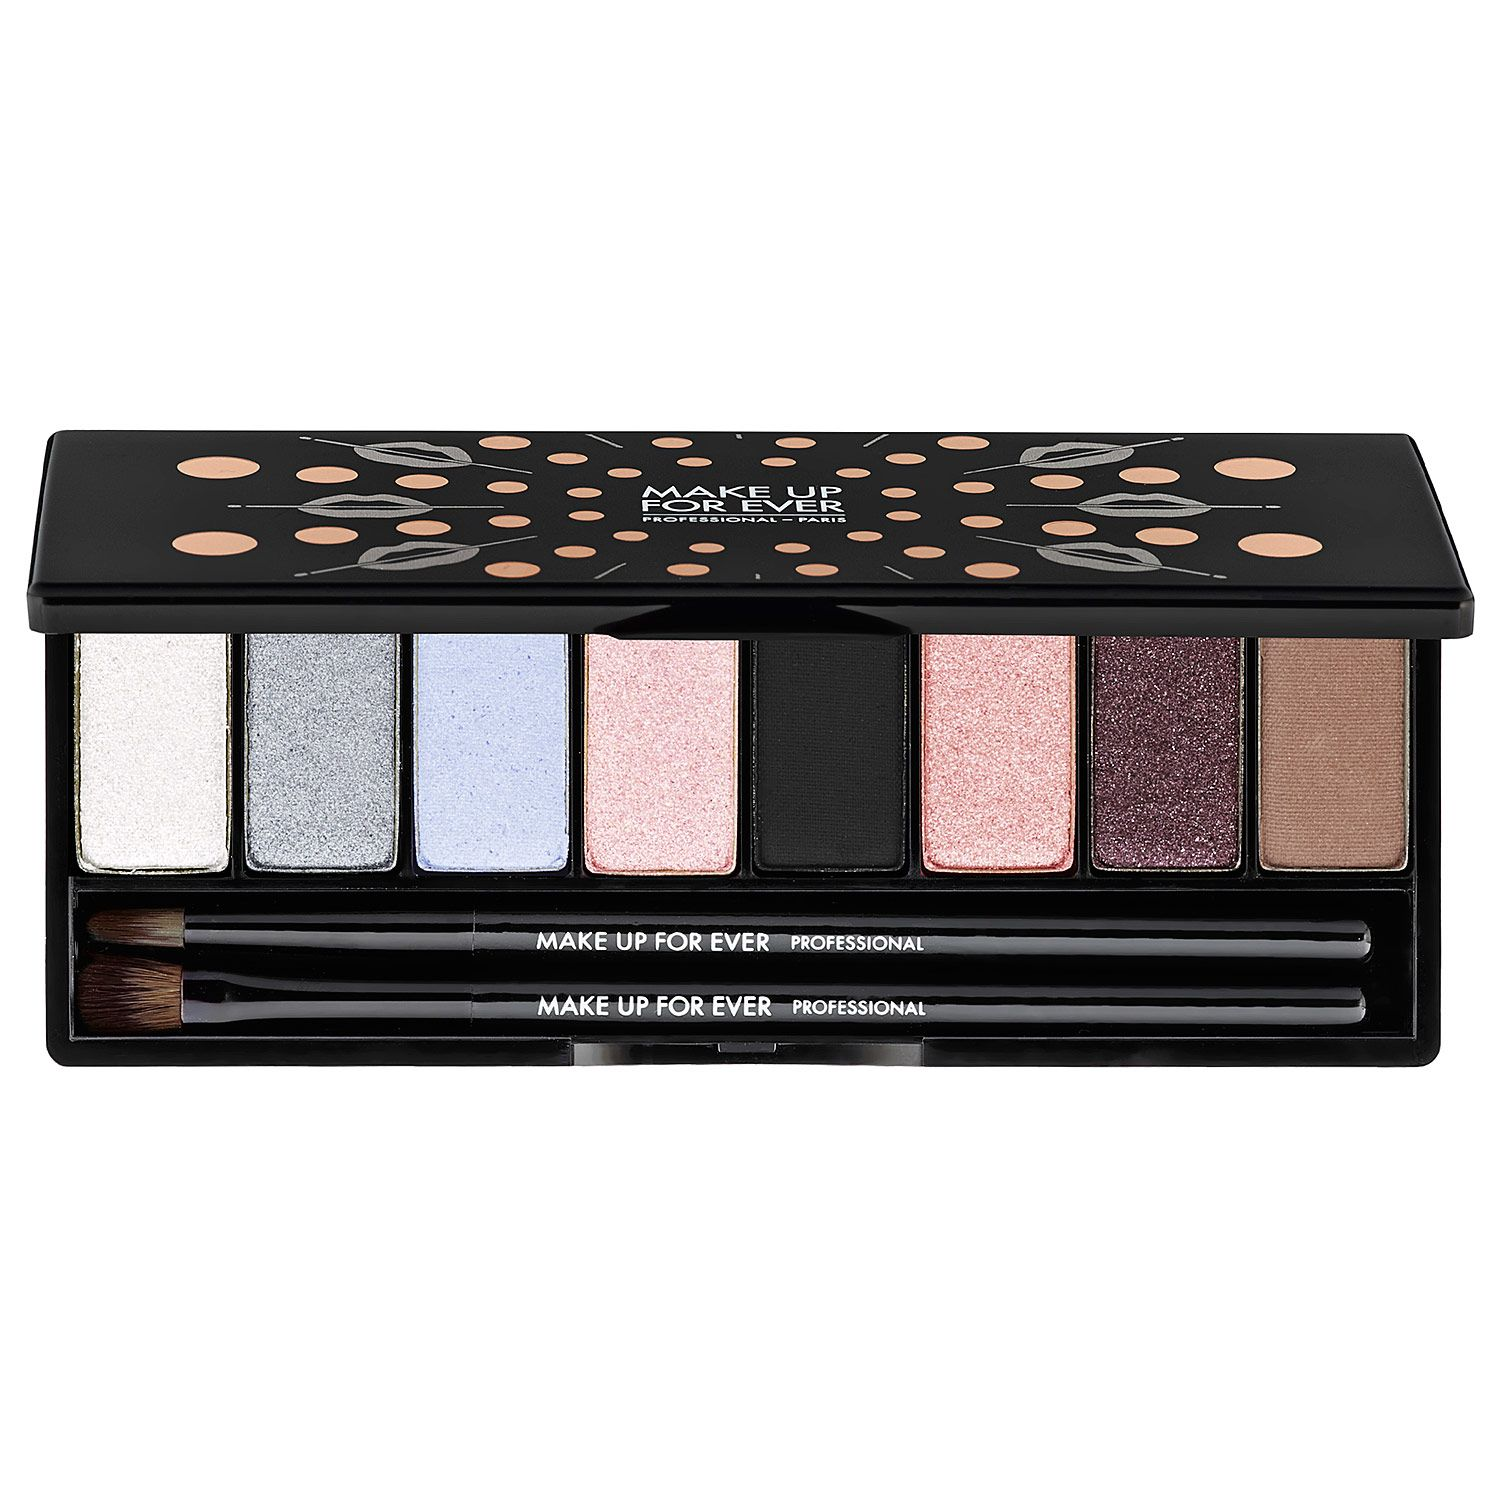 New at Sephora MAKE UP FOR EVER Midnight Glow Palette.